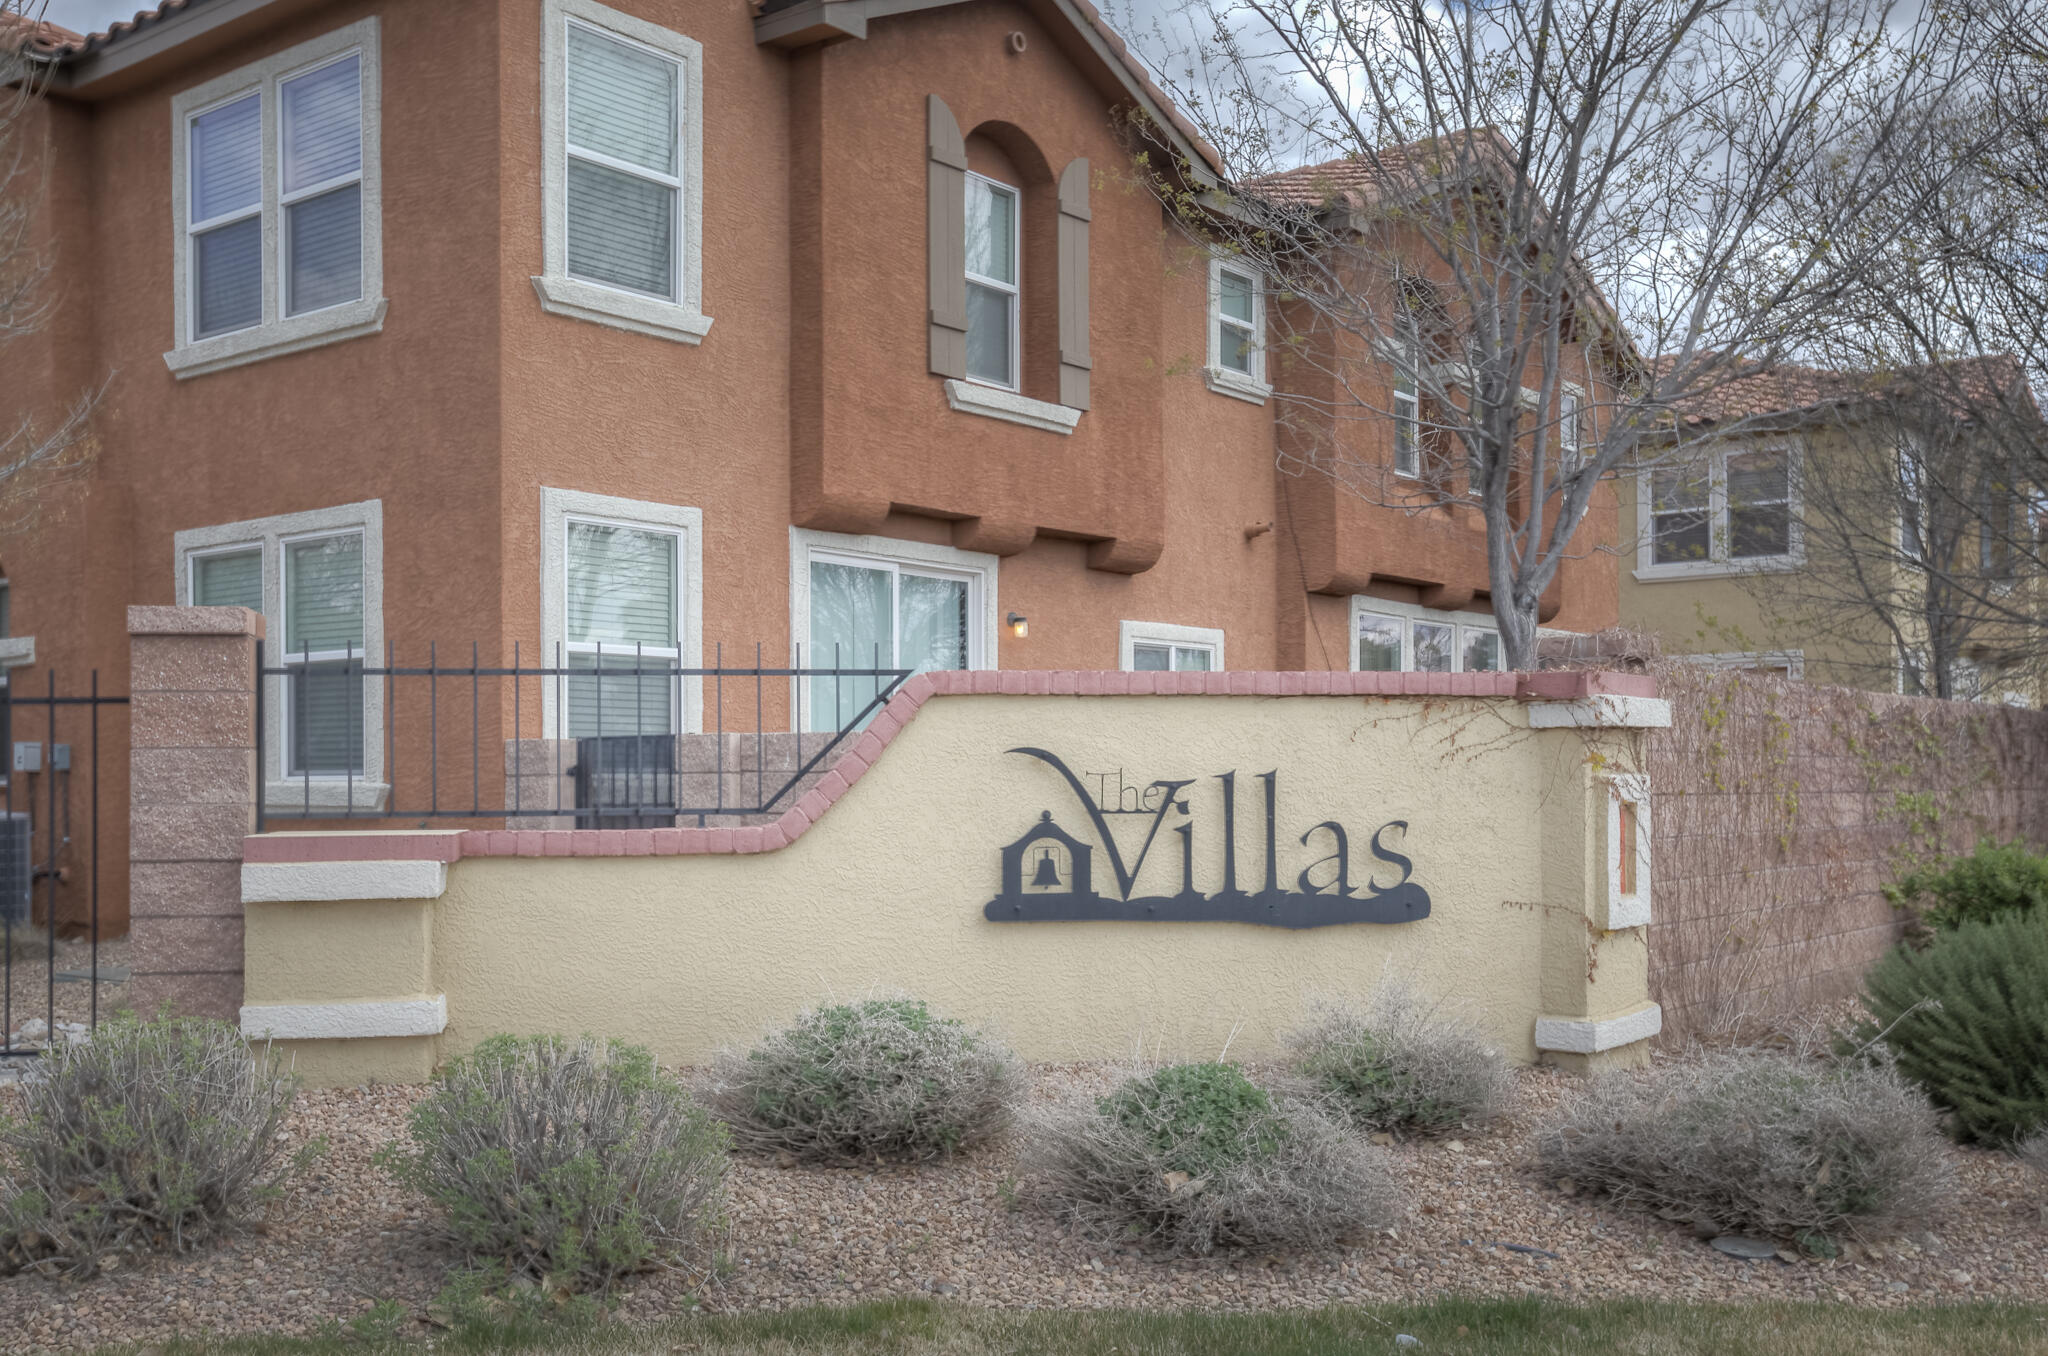 NO SHOWINGS UNTIL APRIL 2nd. Updated Townhome centrally located in The Villas gated community. Close proximity to UNM, Hospitals, Downtown and many more amenities. Open floor plan with updated Stainless appliances, granite counters, cabinets, laminate wood flooring, central vacuum, tankless water heater, refrigerated AC and private patio.  Master bedroom has large walk-in closet and double vanity. The Villas HOA maintains entry gate security, building exteriors, landscaped common areas & playgrounds and community pool & club house.